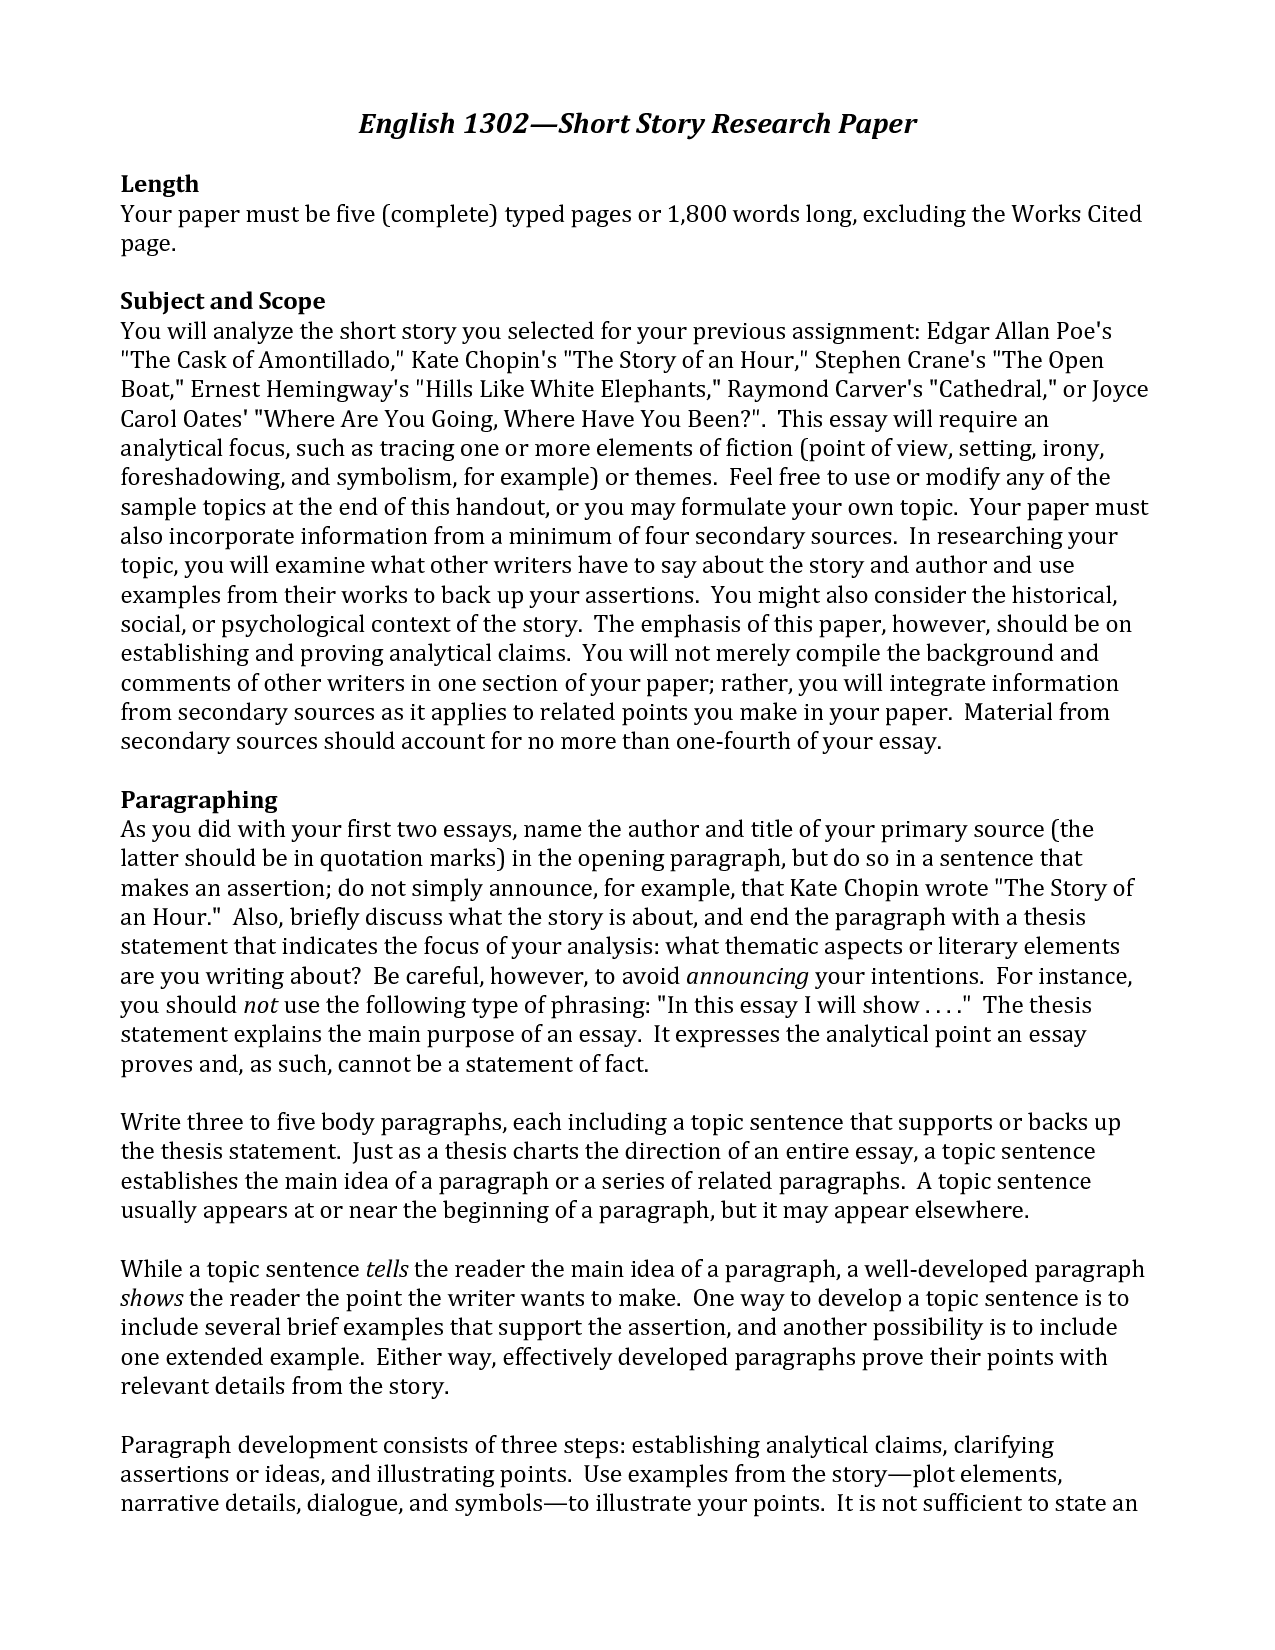 008 Essay Research Paper Topics Shocking Sample Technology About Business Economics Full